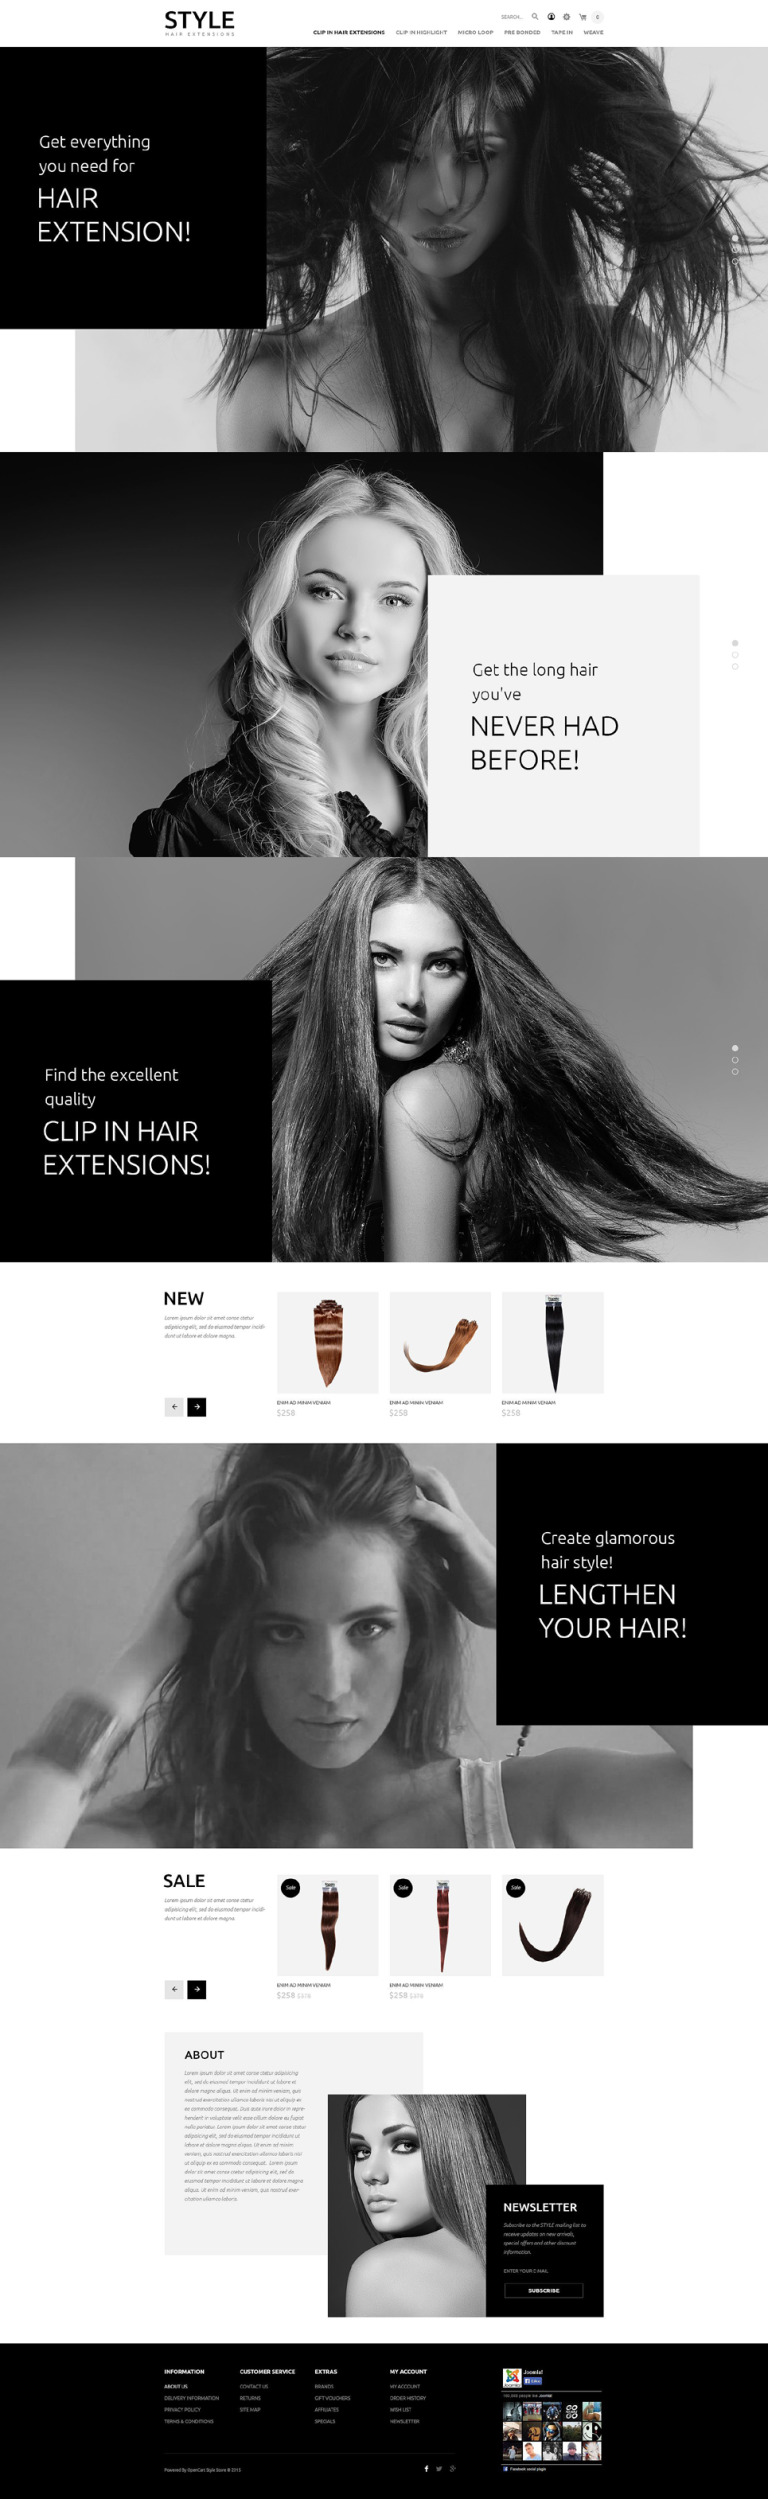 Hair and Beauty Salon OpenCart Template New Screenshots BIG